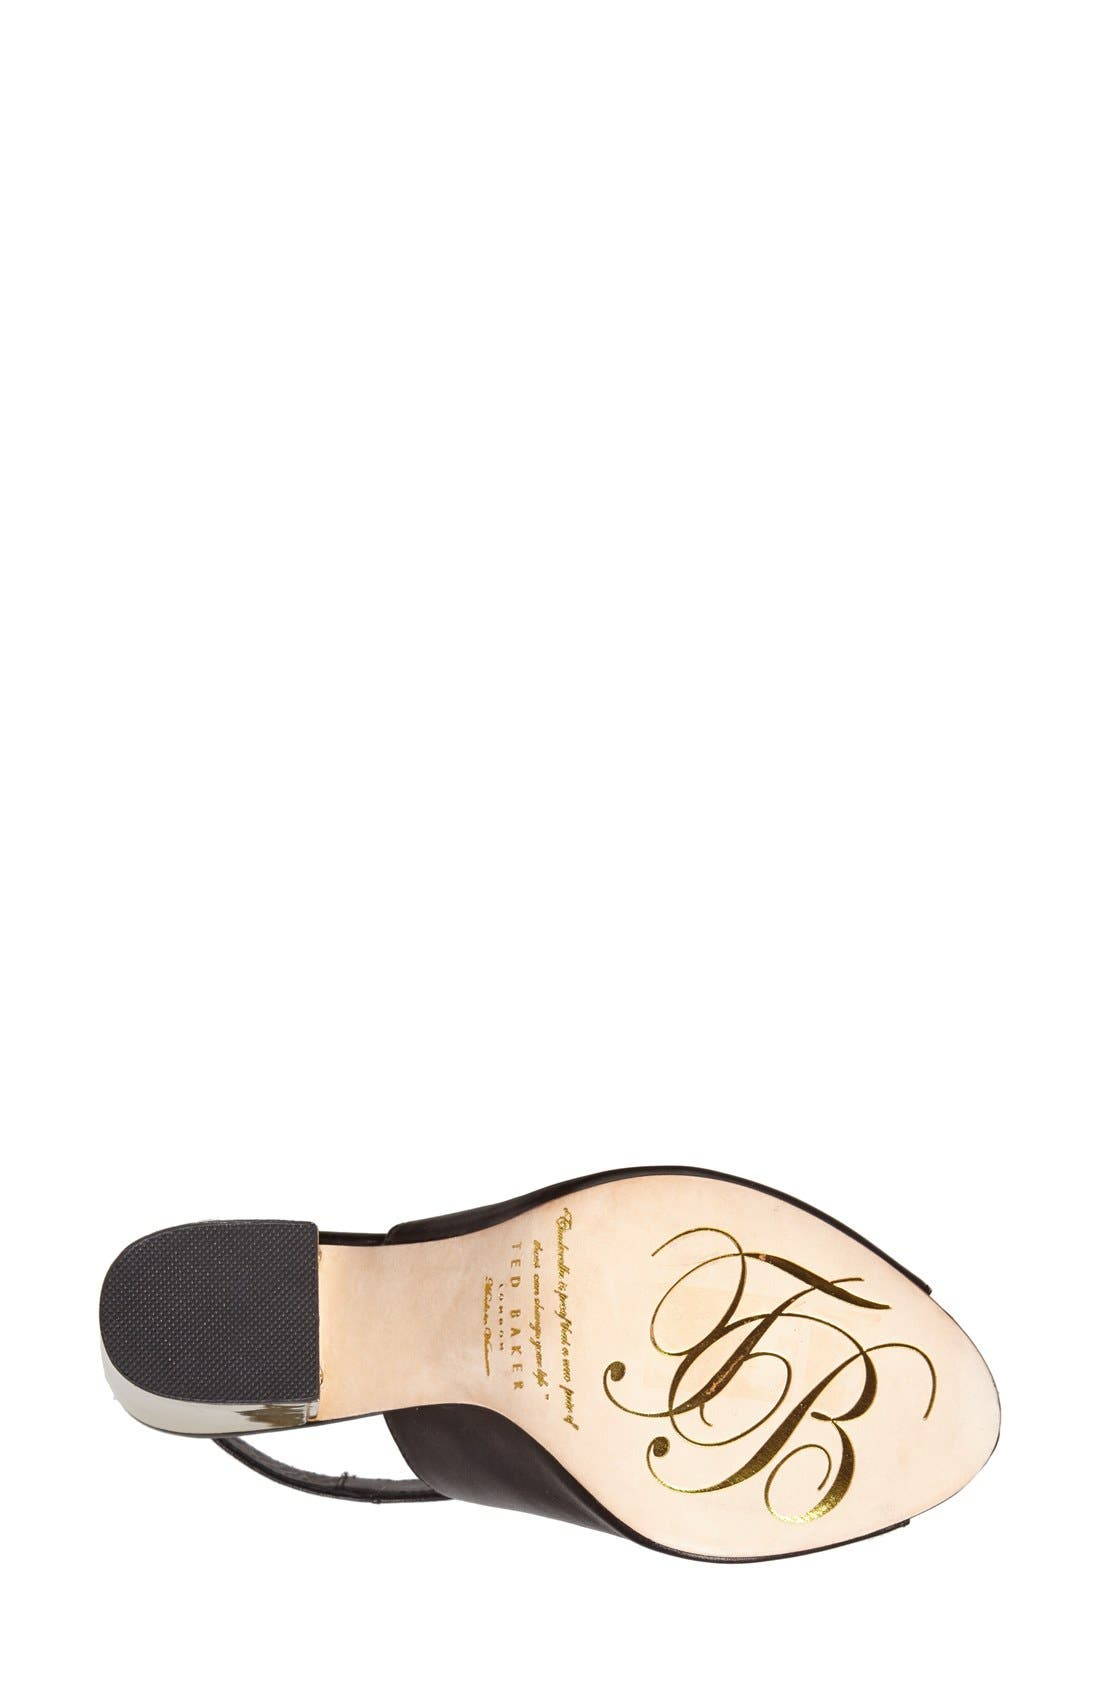 'Montagny' Leather Sandal,                             Alternate thumbnail 3, color,                             001